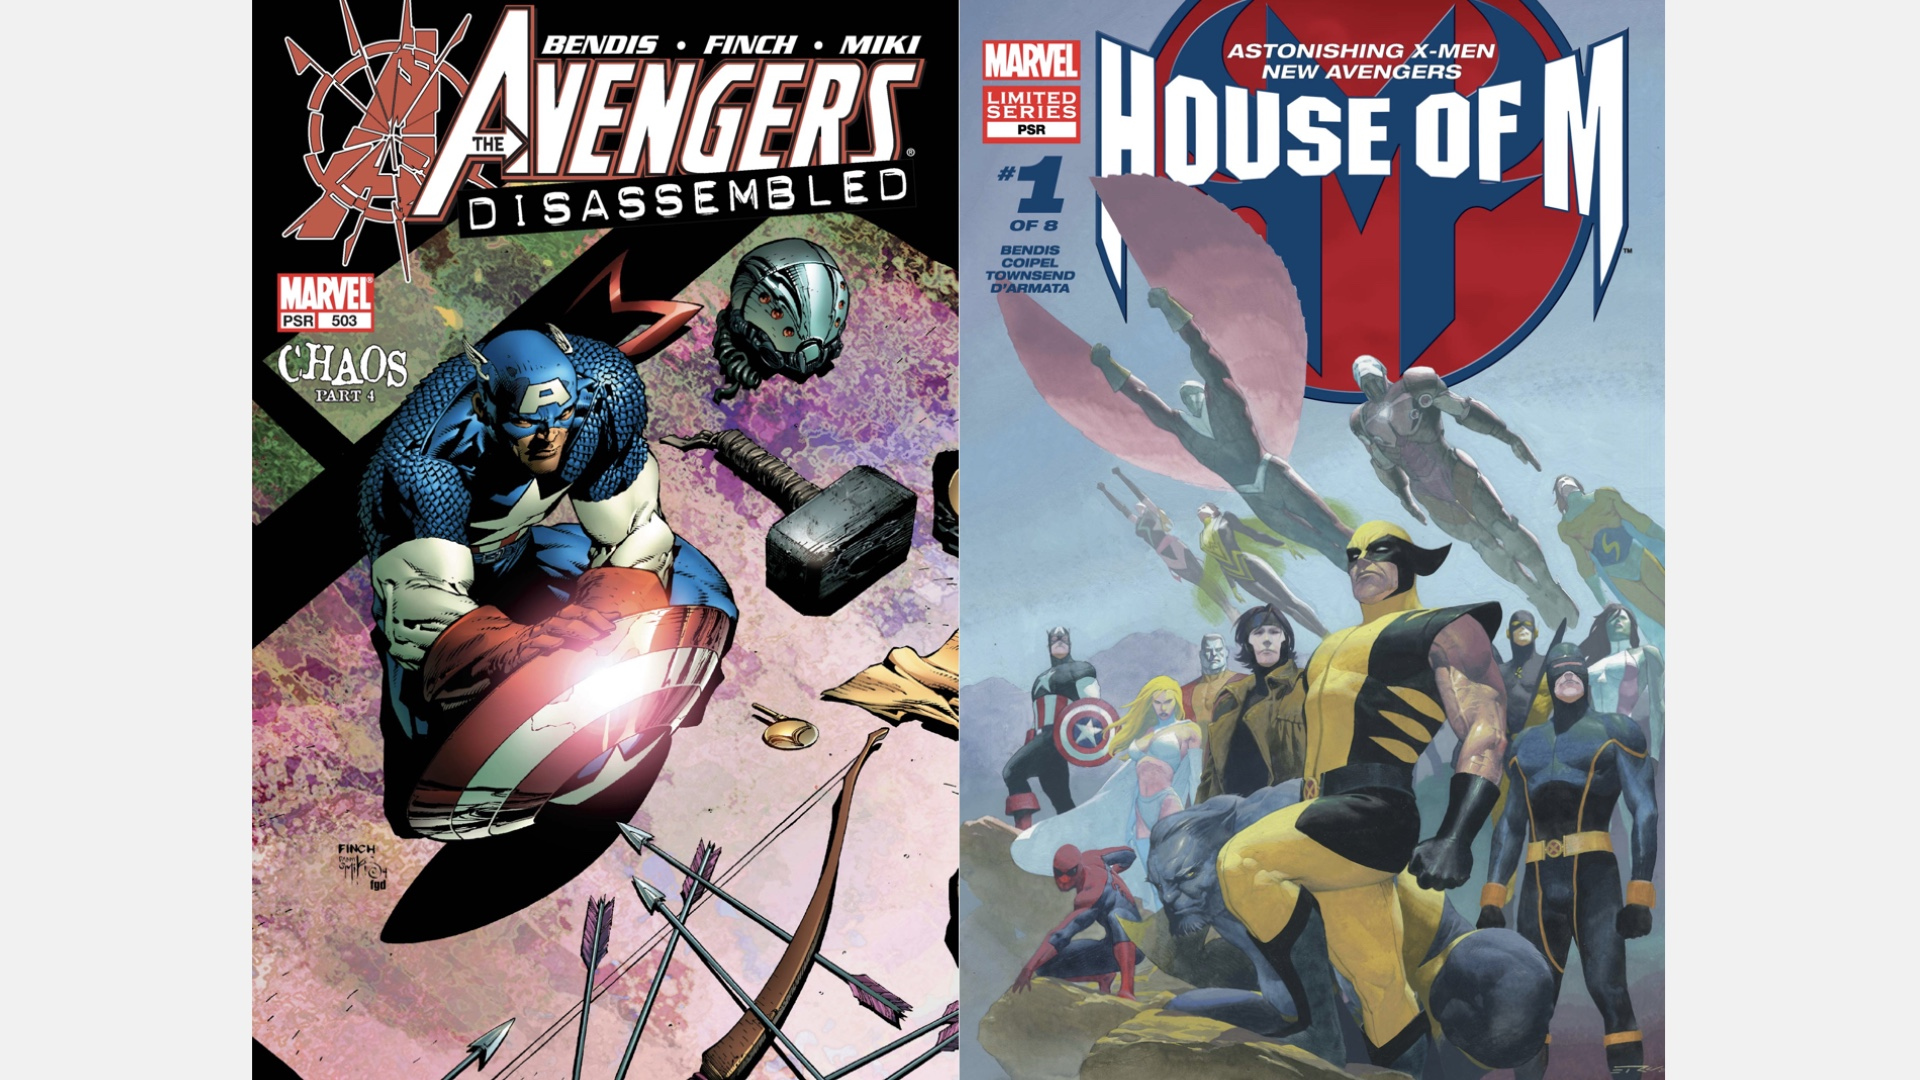 covers of Avengers #503 and House of M #1